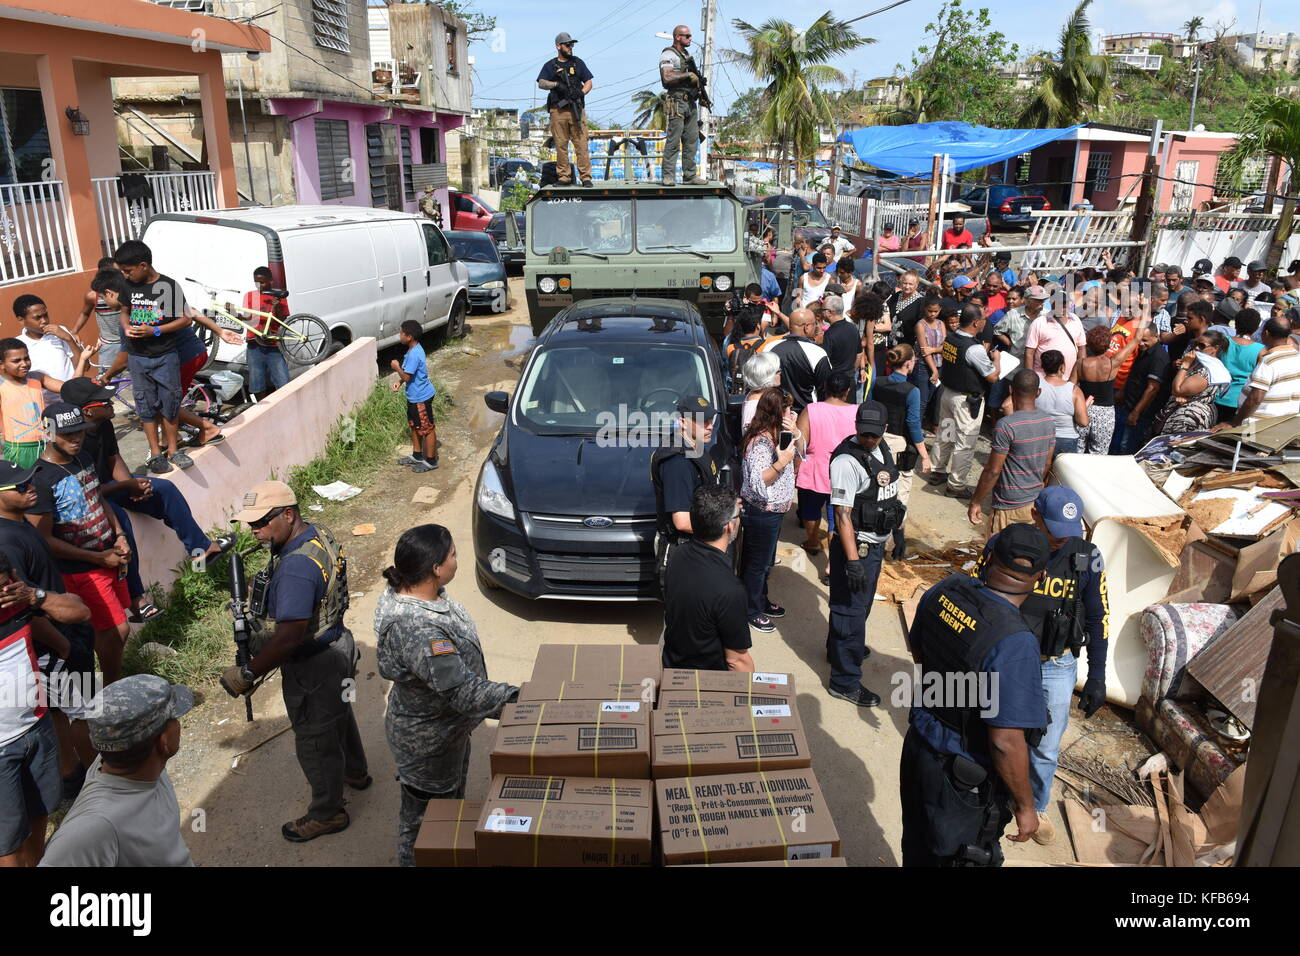 U.S. Army soldiers, U.S. Coast Guard officers and FEMA volunteers deliver emergency supplies to Puerto Rican residents - Stock Image